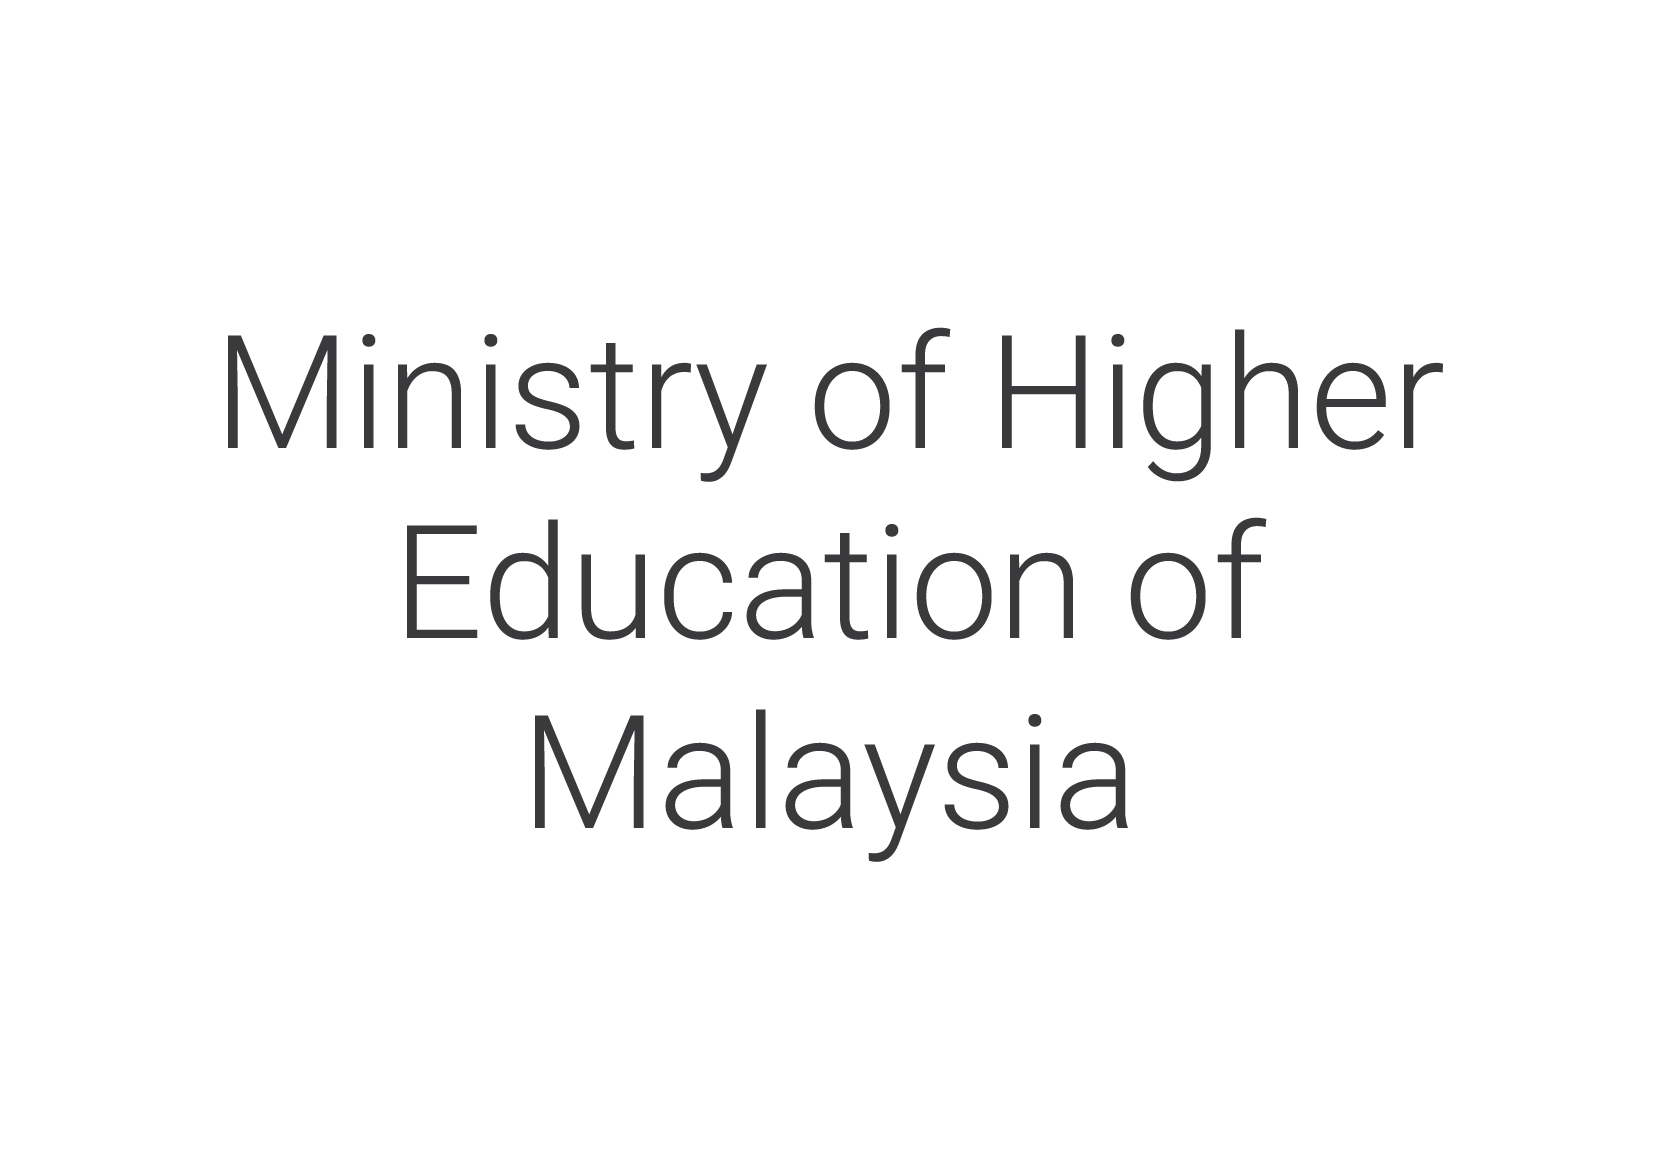 Ministry of Higher Education of Malaysia